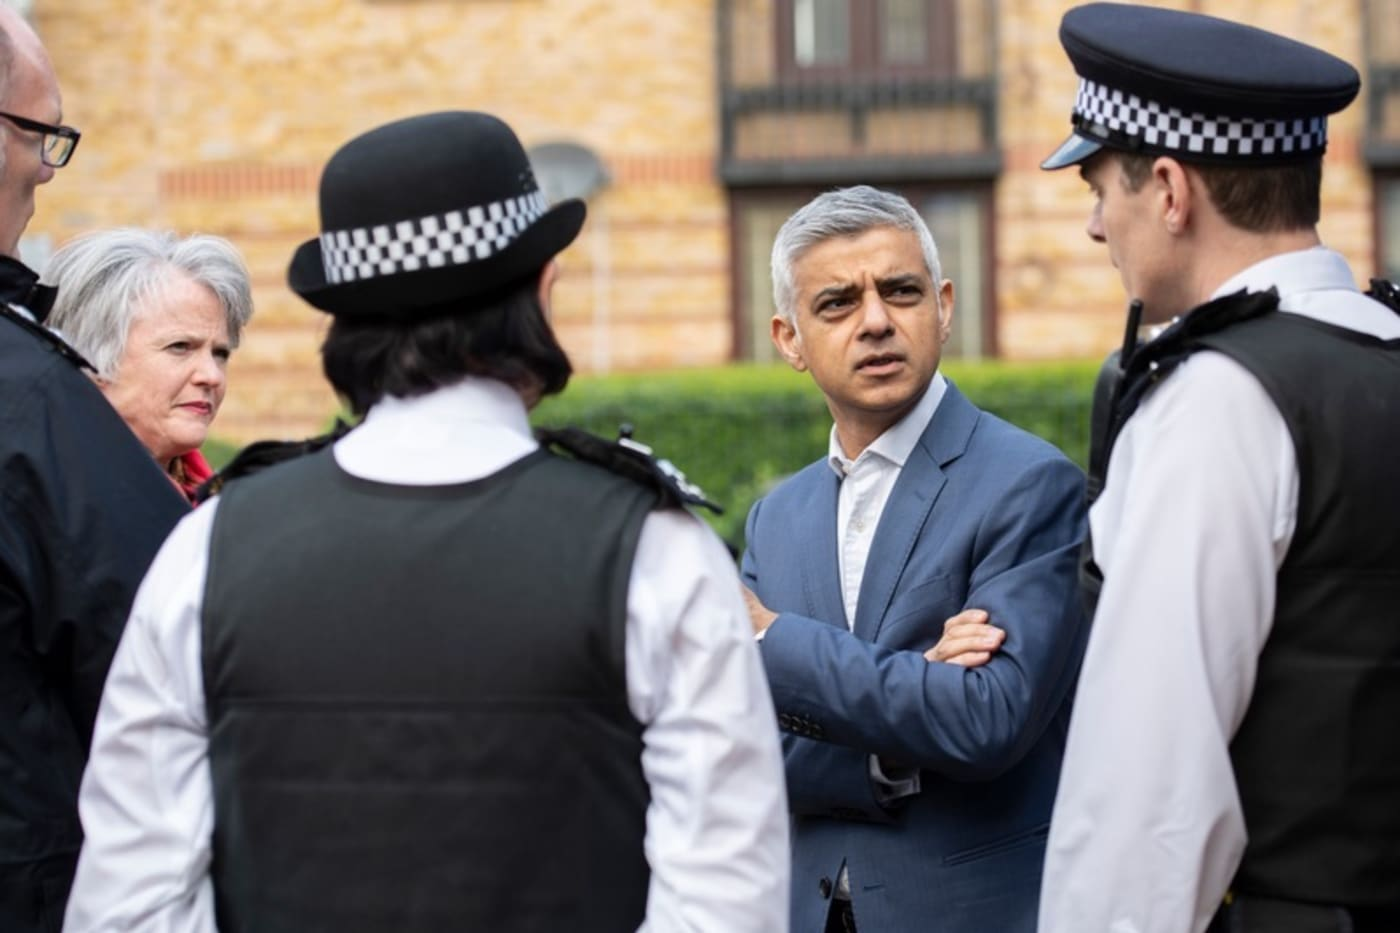 Sadiq Khan (credit: Greater London Authority)